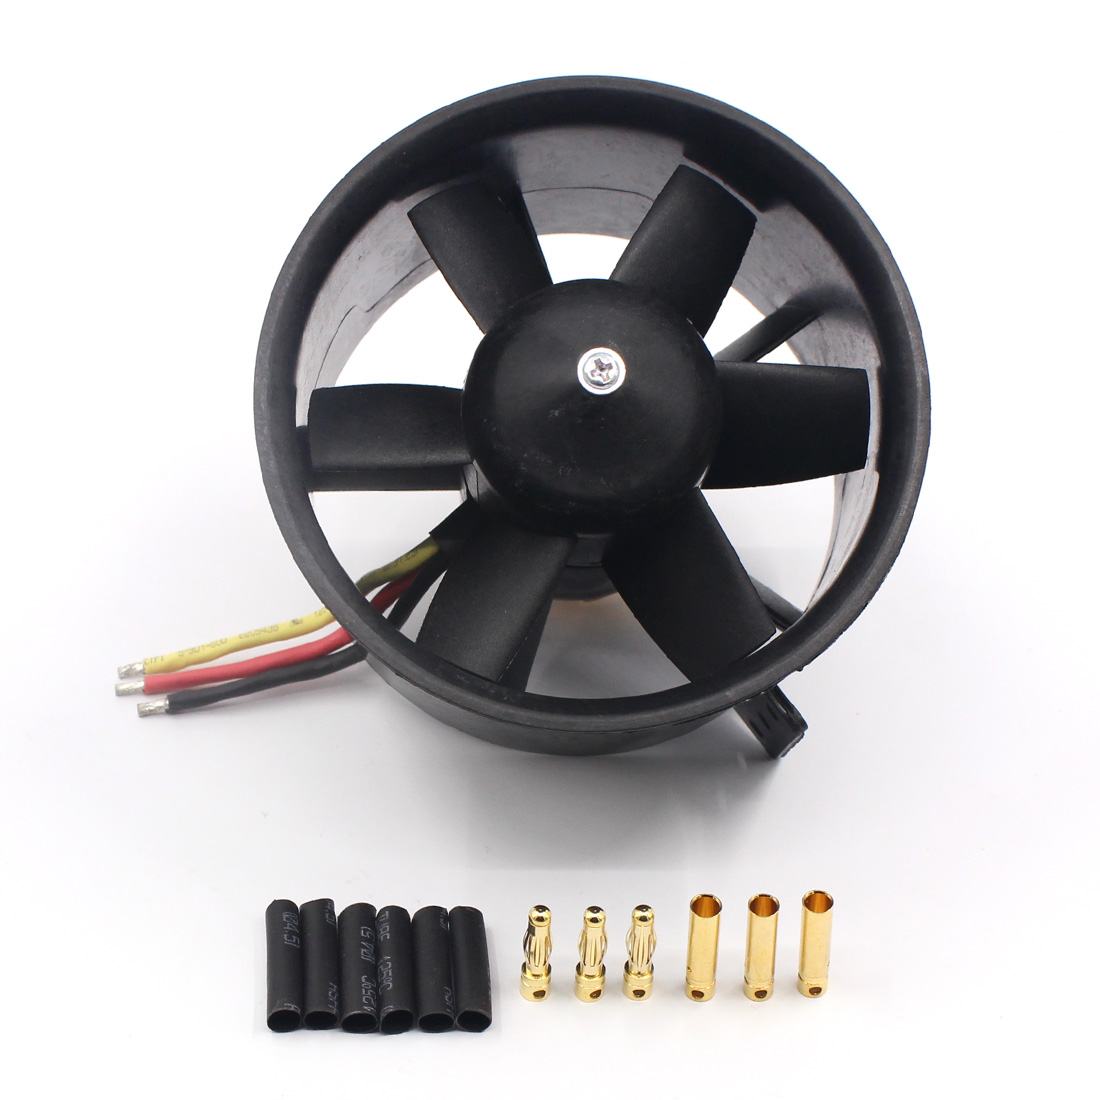 Us 35 91 Qx 90mm Edf Ducted Fan Motor 6 Blades Qf3530 1750kv Brushless Balance Tested For Jet Rc Airplane Multicopter Www Xt Xinte